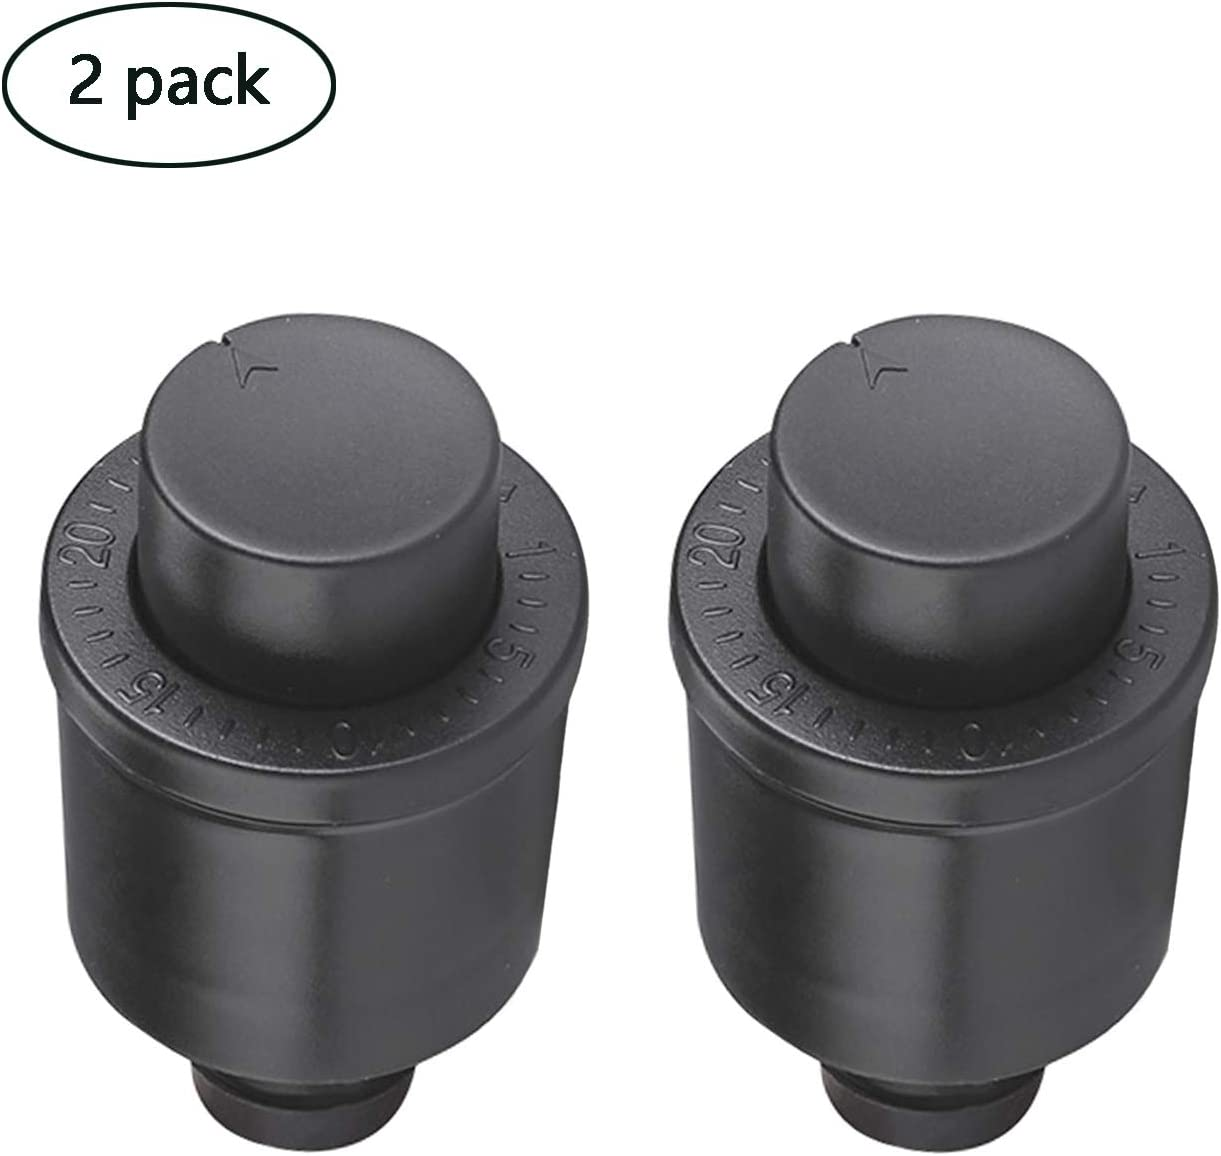 Wine Stoppers with Time Scale Record Saver,2 Pack Reusable Vacuum Bottle Stoppers Sealing plug,Keep Wine Fresh up to 10 days(2 pcs)